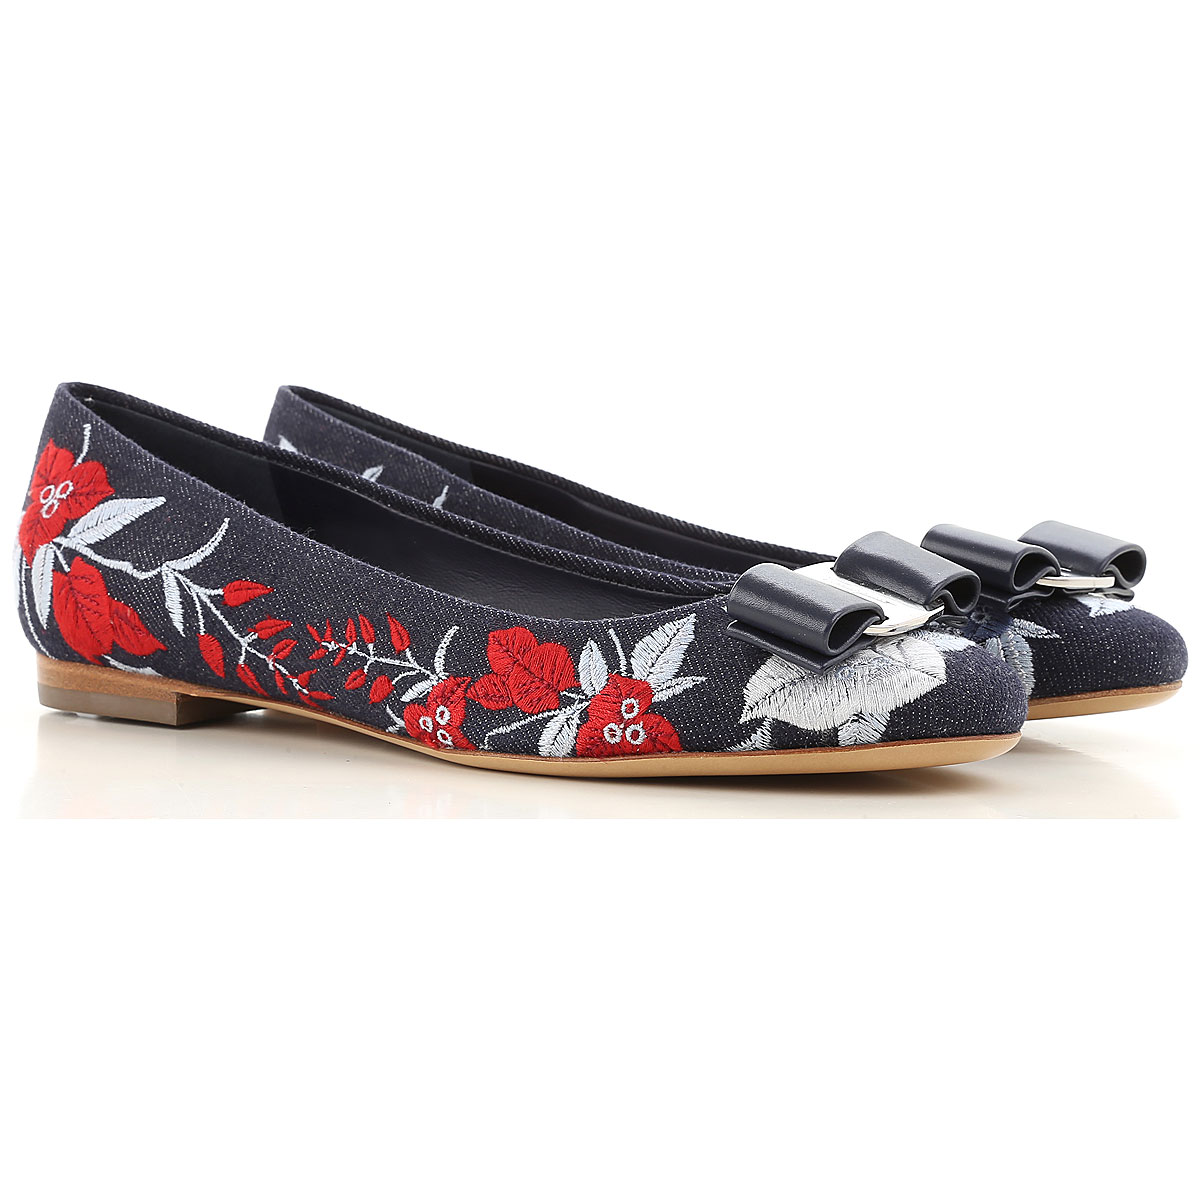 Image of Salvatore Ferragamo Ballet Flats Ballerina Shoes for Women On Sale in Outlet, Blu Denim, Leather, 2017, 5.5 6.5